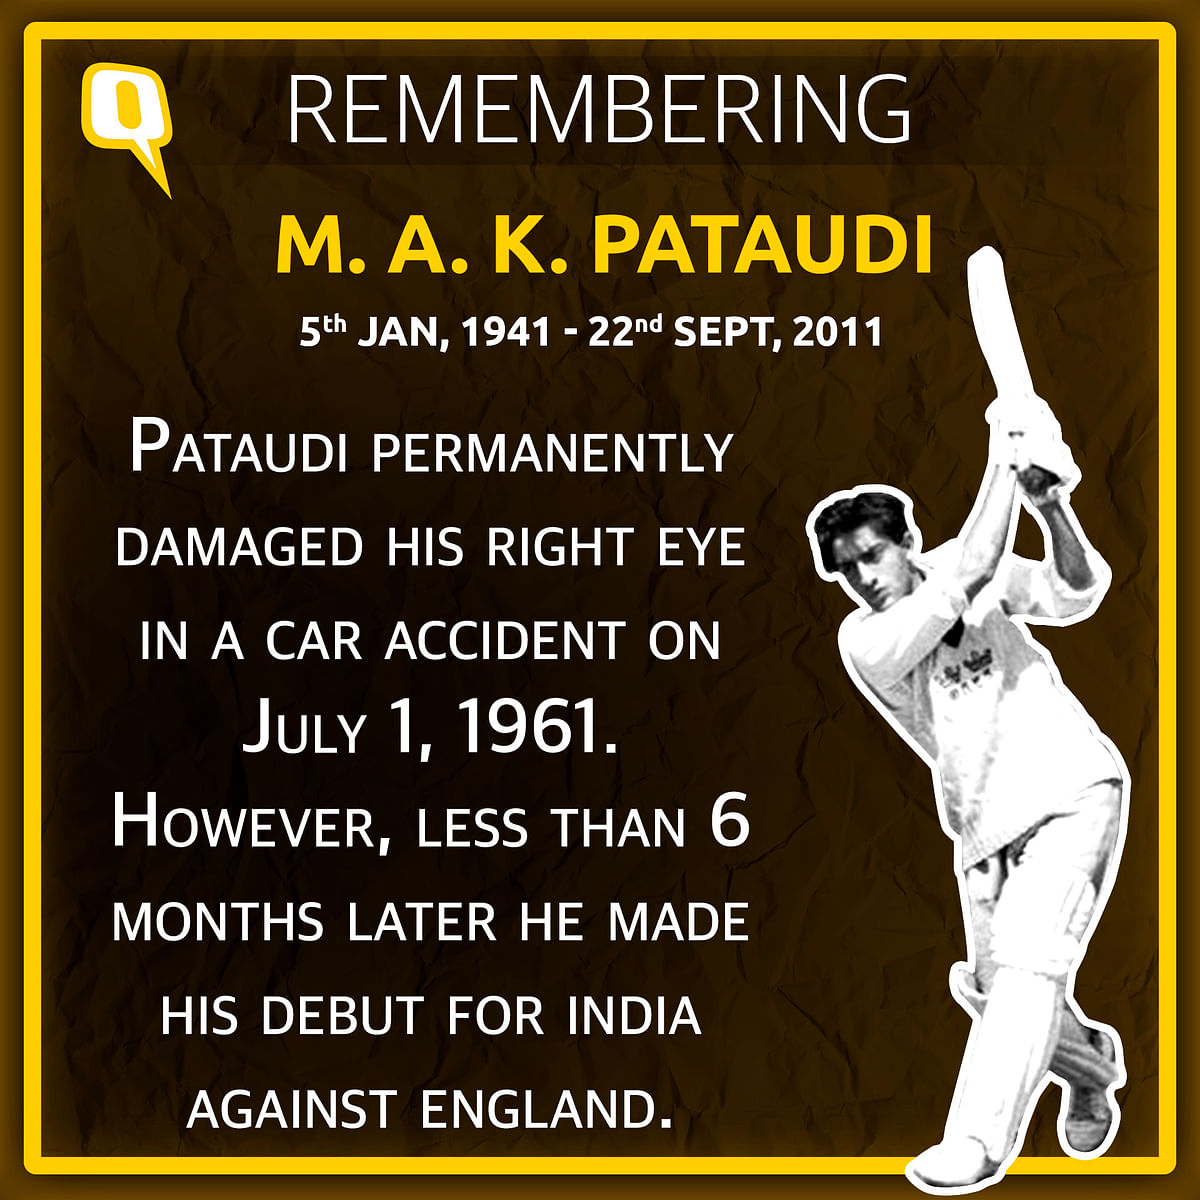 Little-Known Facts About MAK Pataudi on His 80th Birth Anniversary